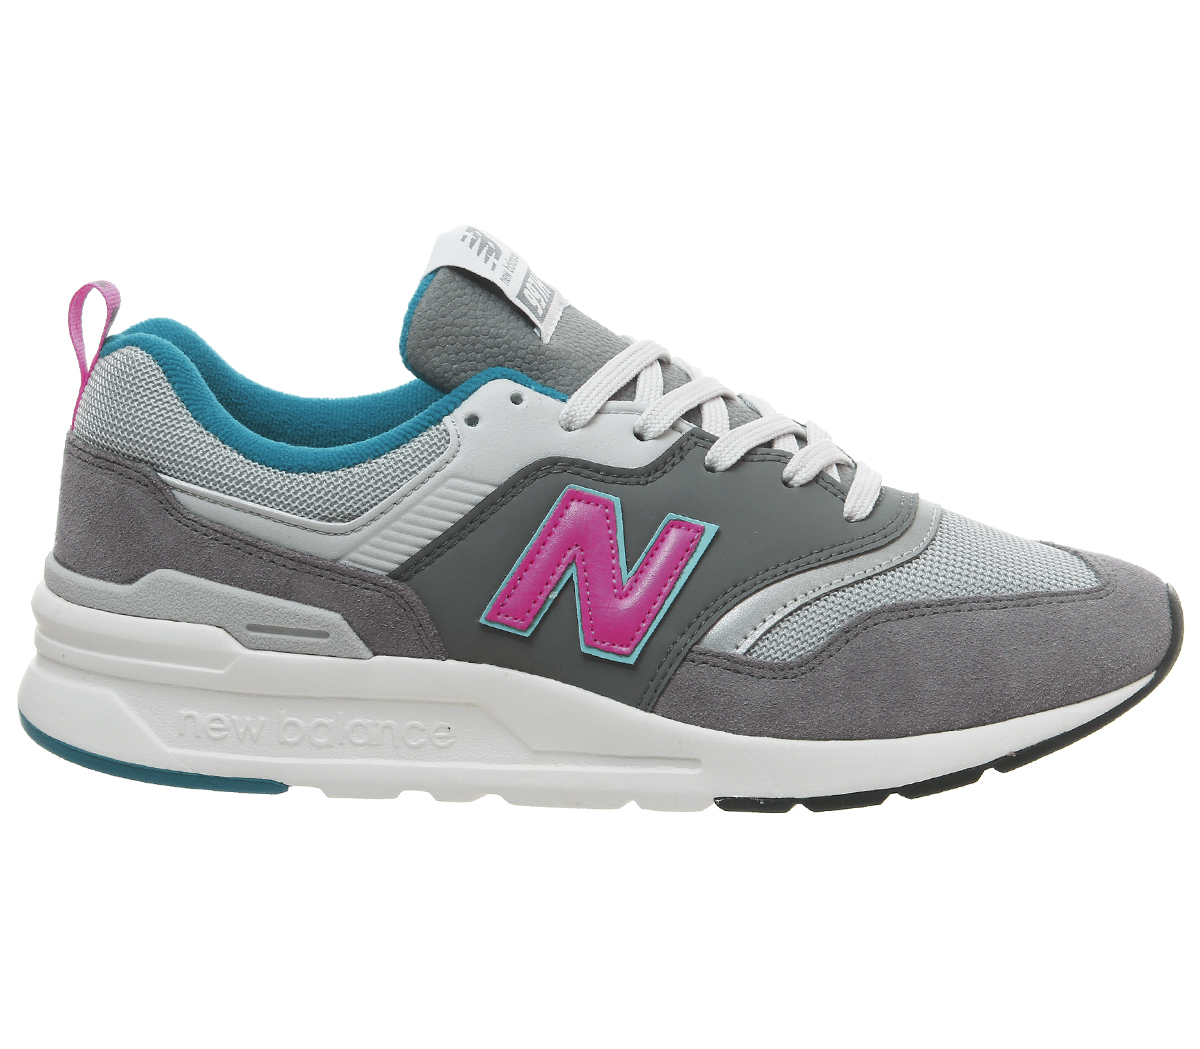 New-Balance-997-Trainers-Castlerock-Peony-Trainers-Shoes thumbnail 3